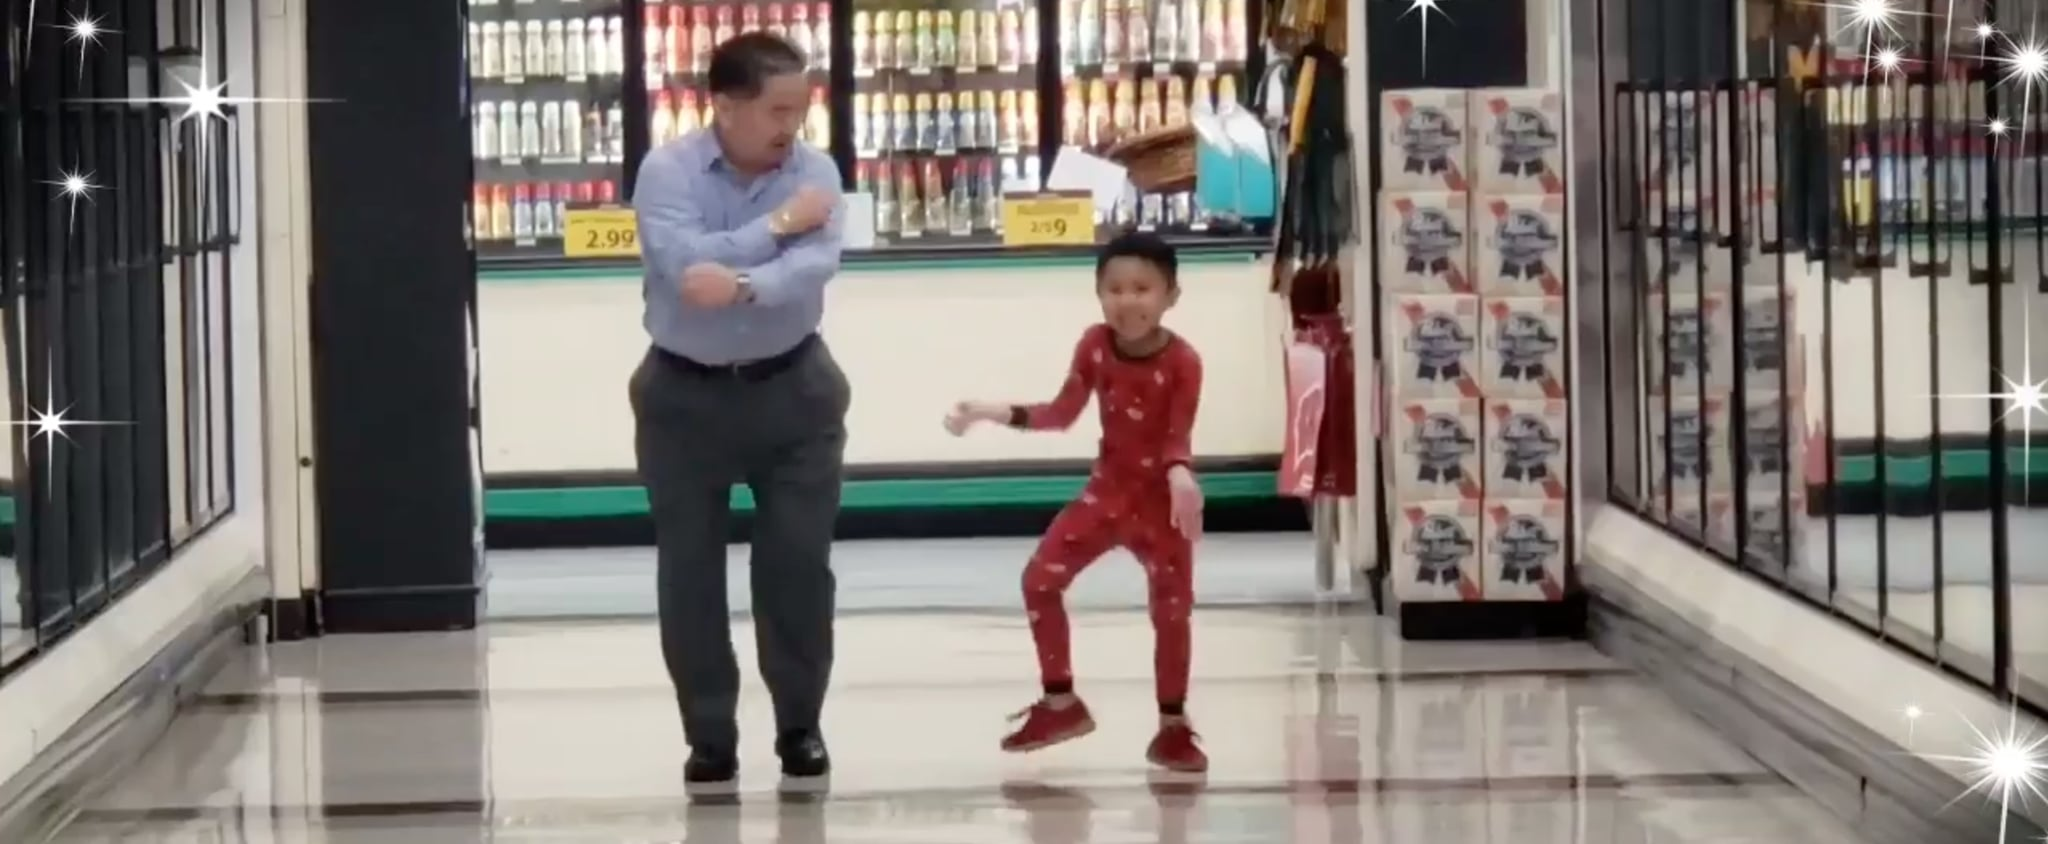 Boy Dancing in the Grocery Store With His Grandpa